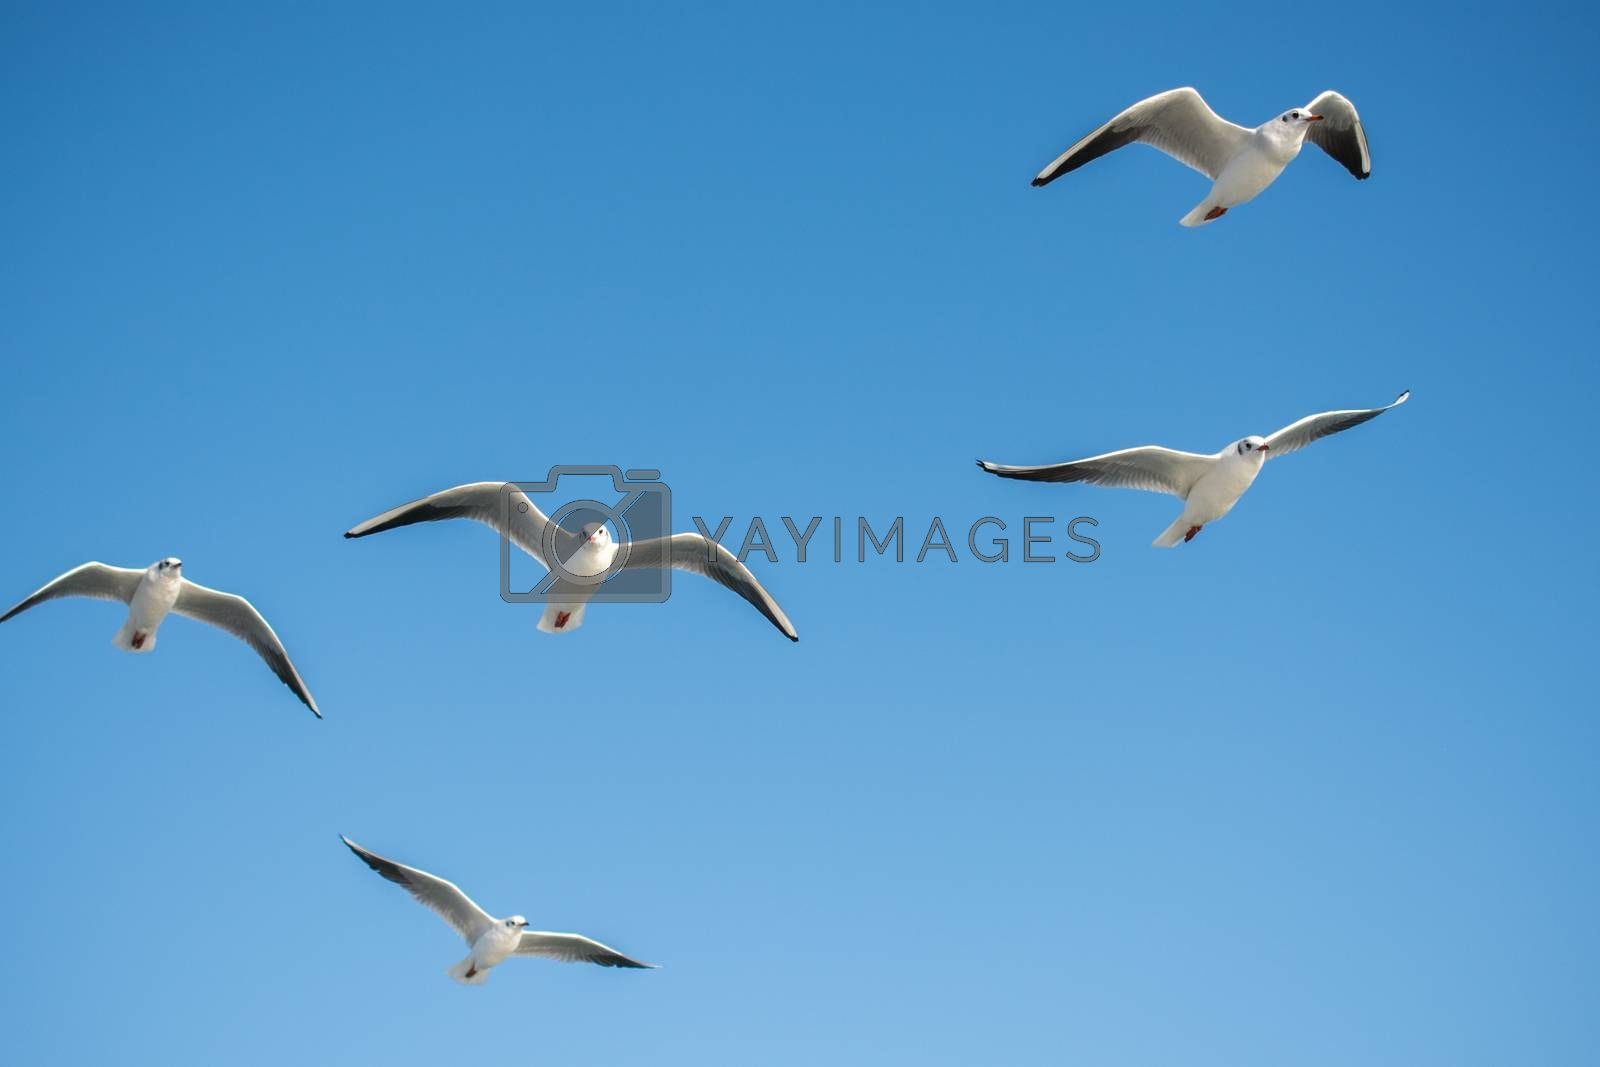 Seagull flying in a blue sky as a background